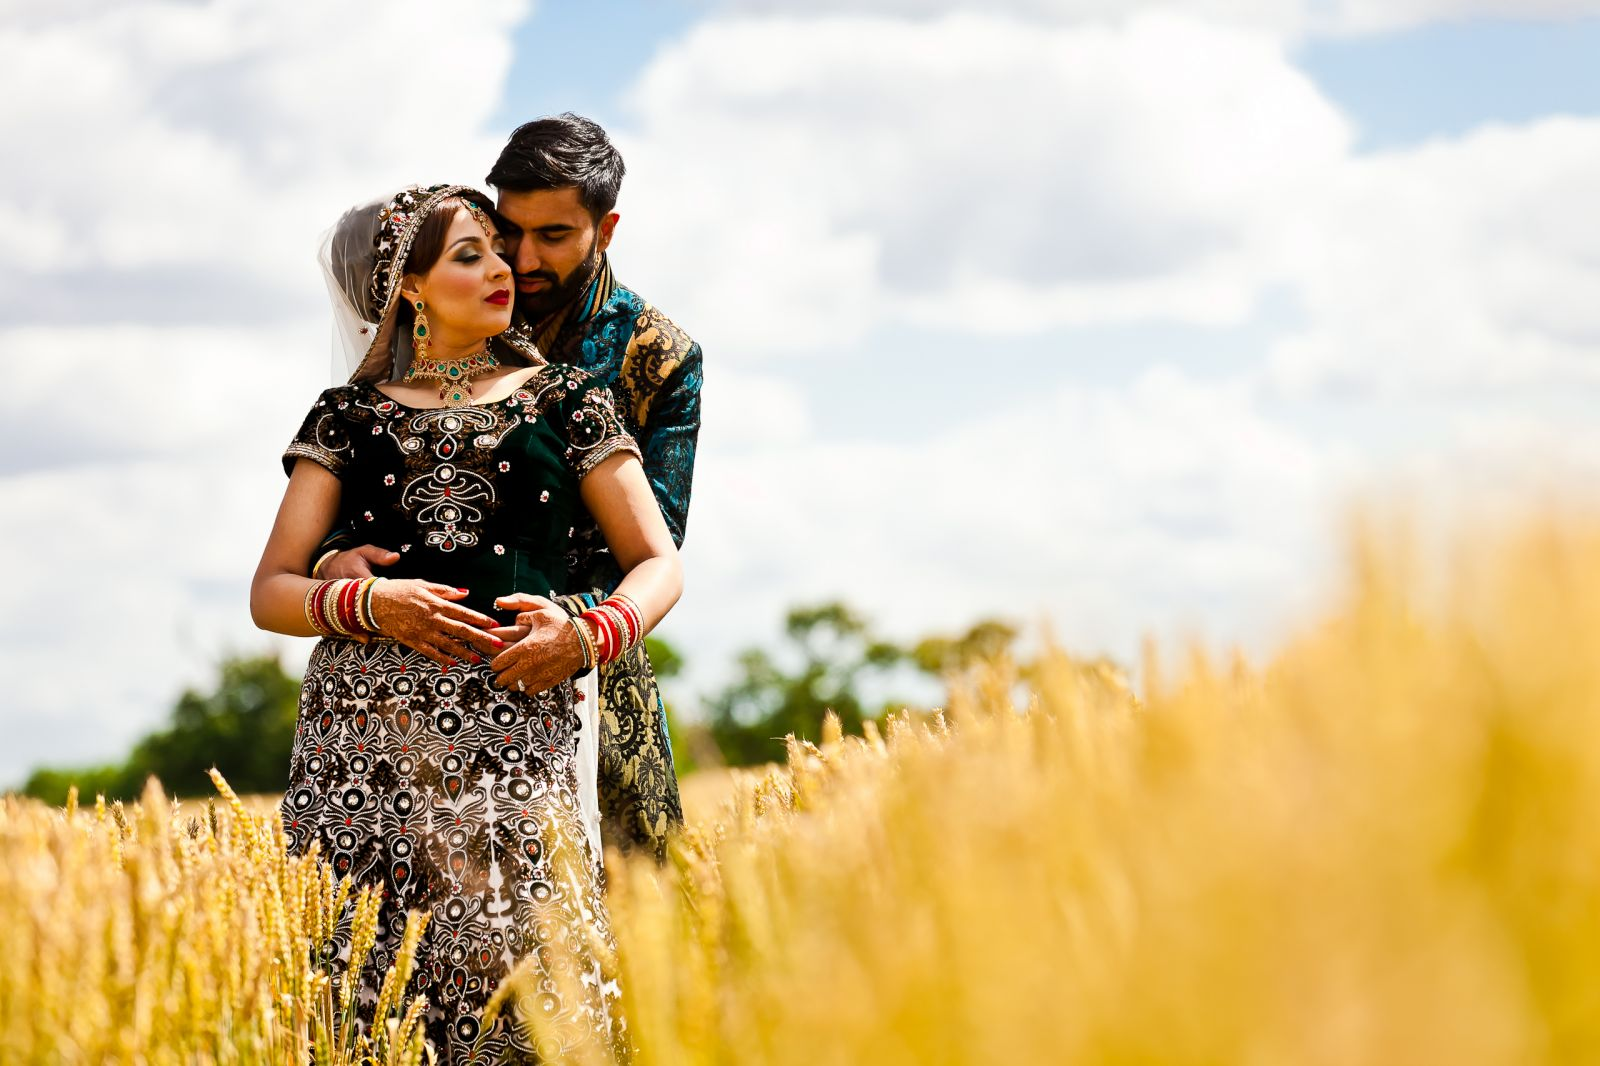 Sikh Wedding Photography in London